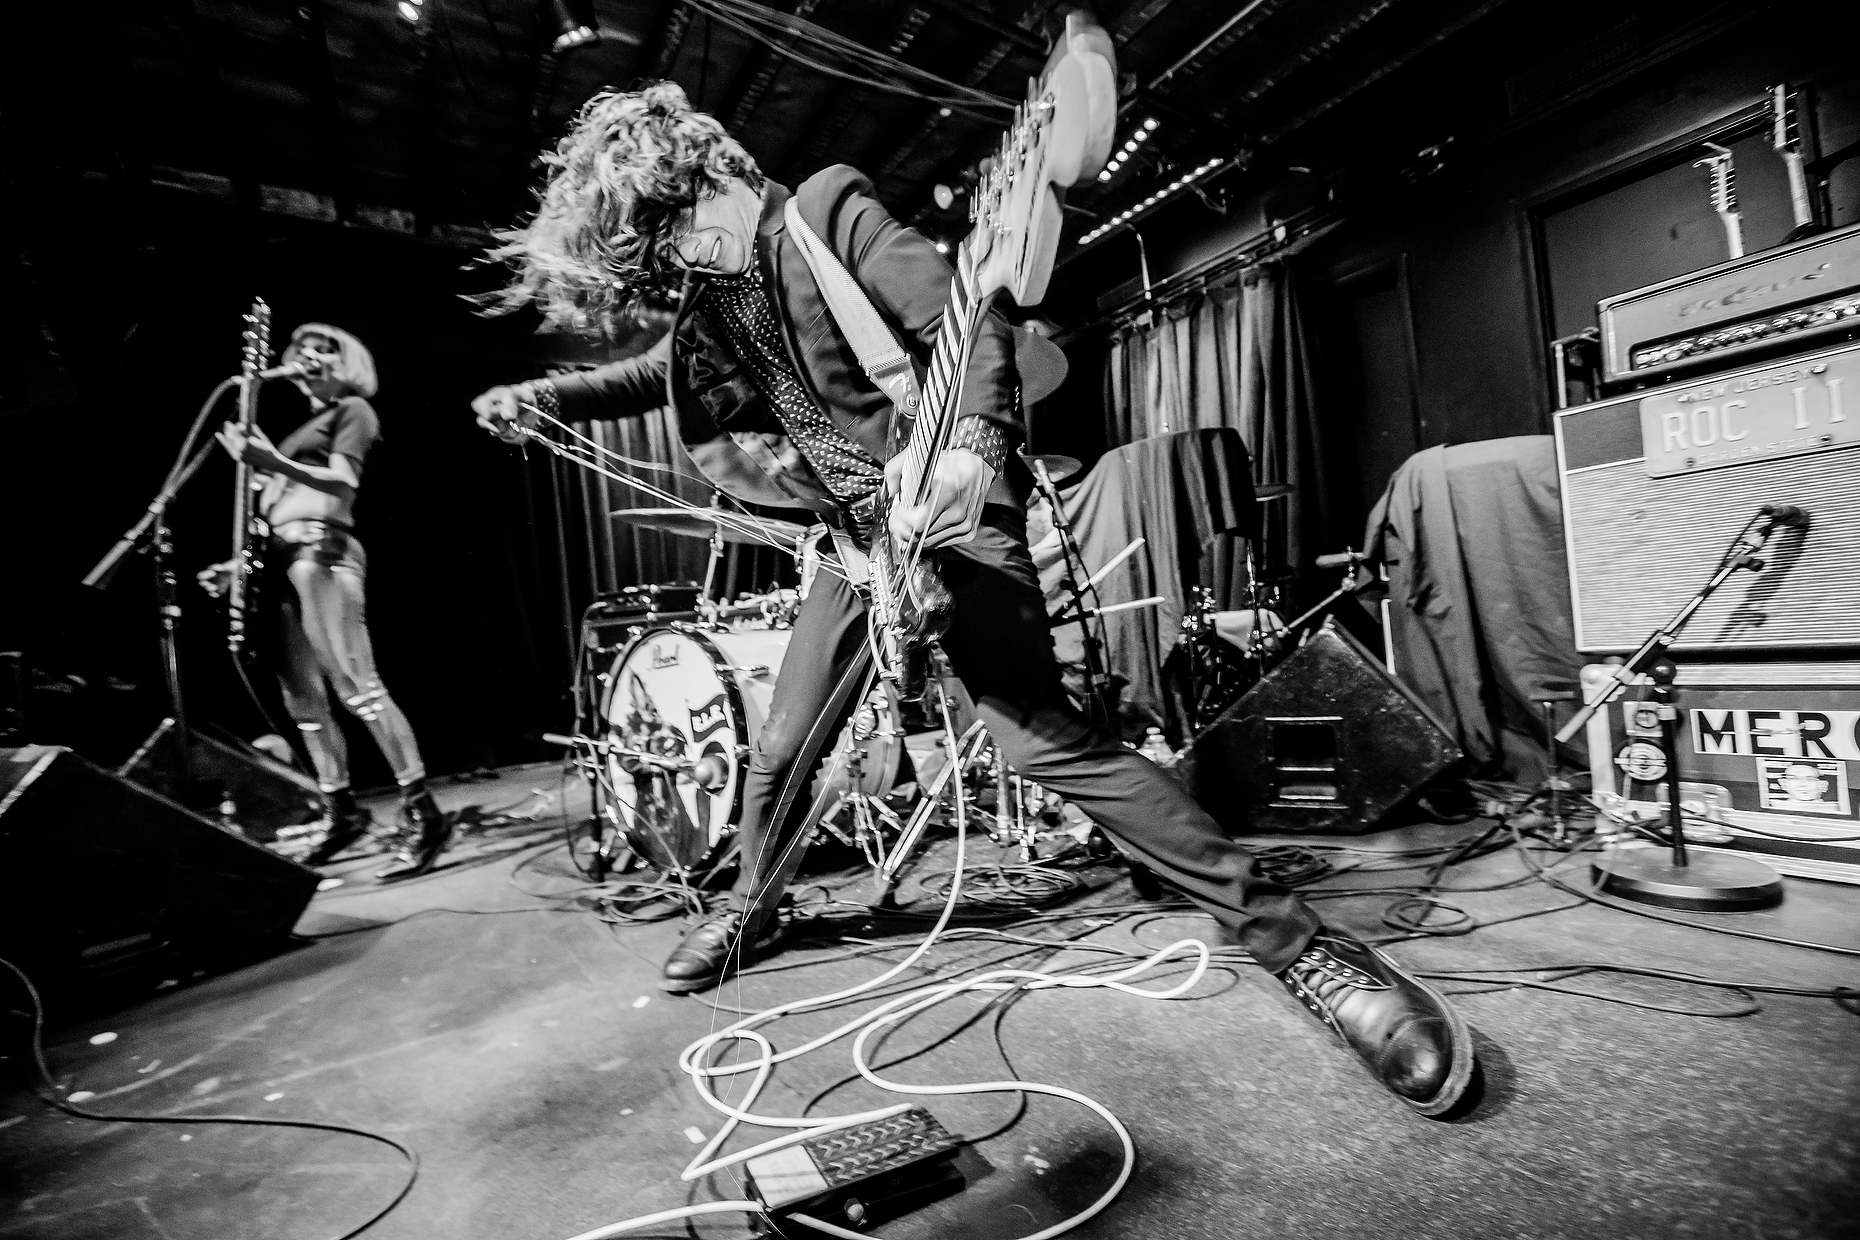 LAURA JANE GRACE & THE DEVOURING MOTHERS + CONTROL TOP + MERCY UNION